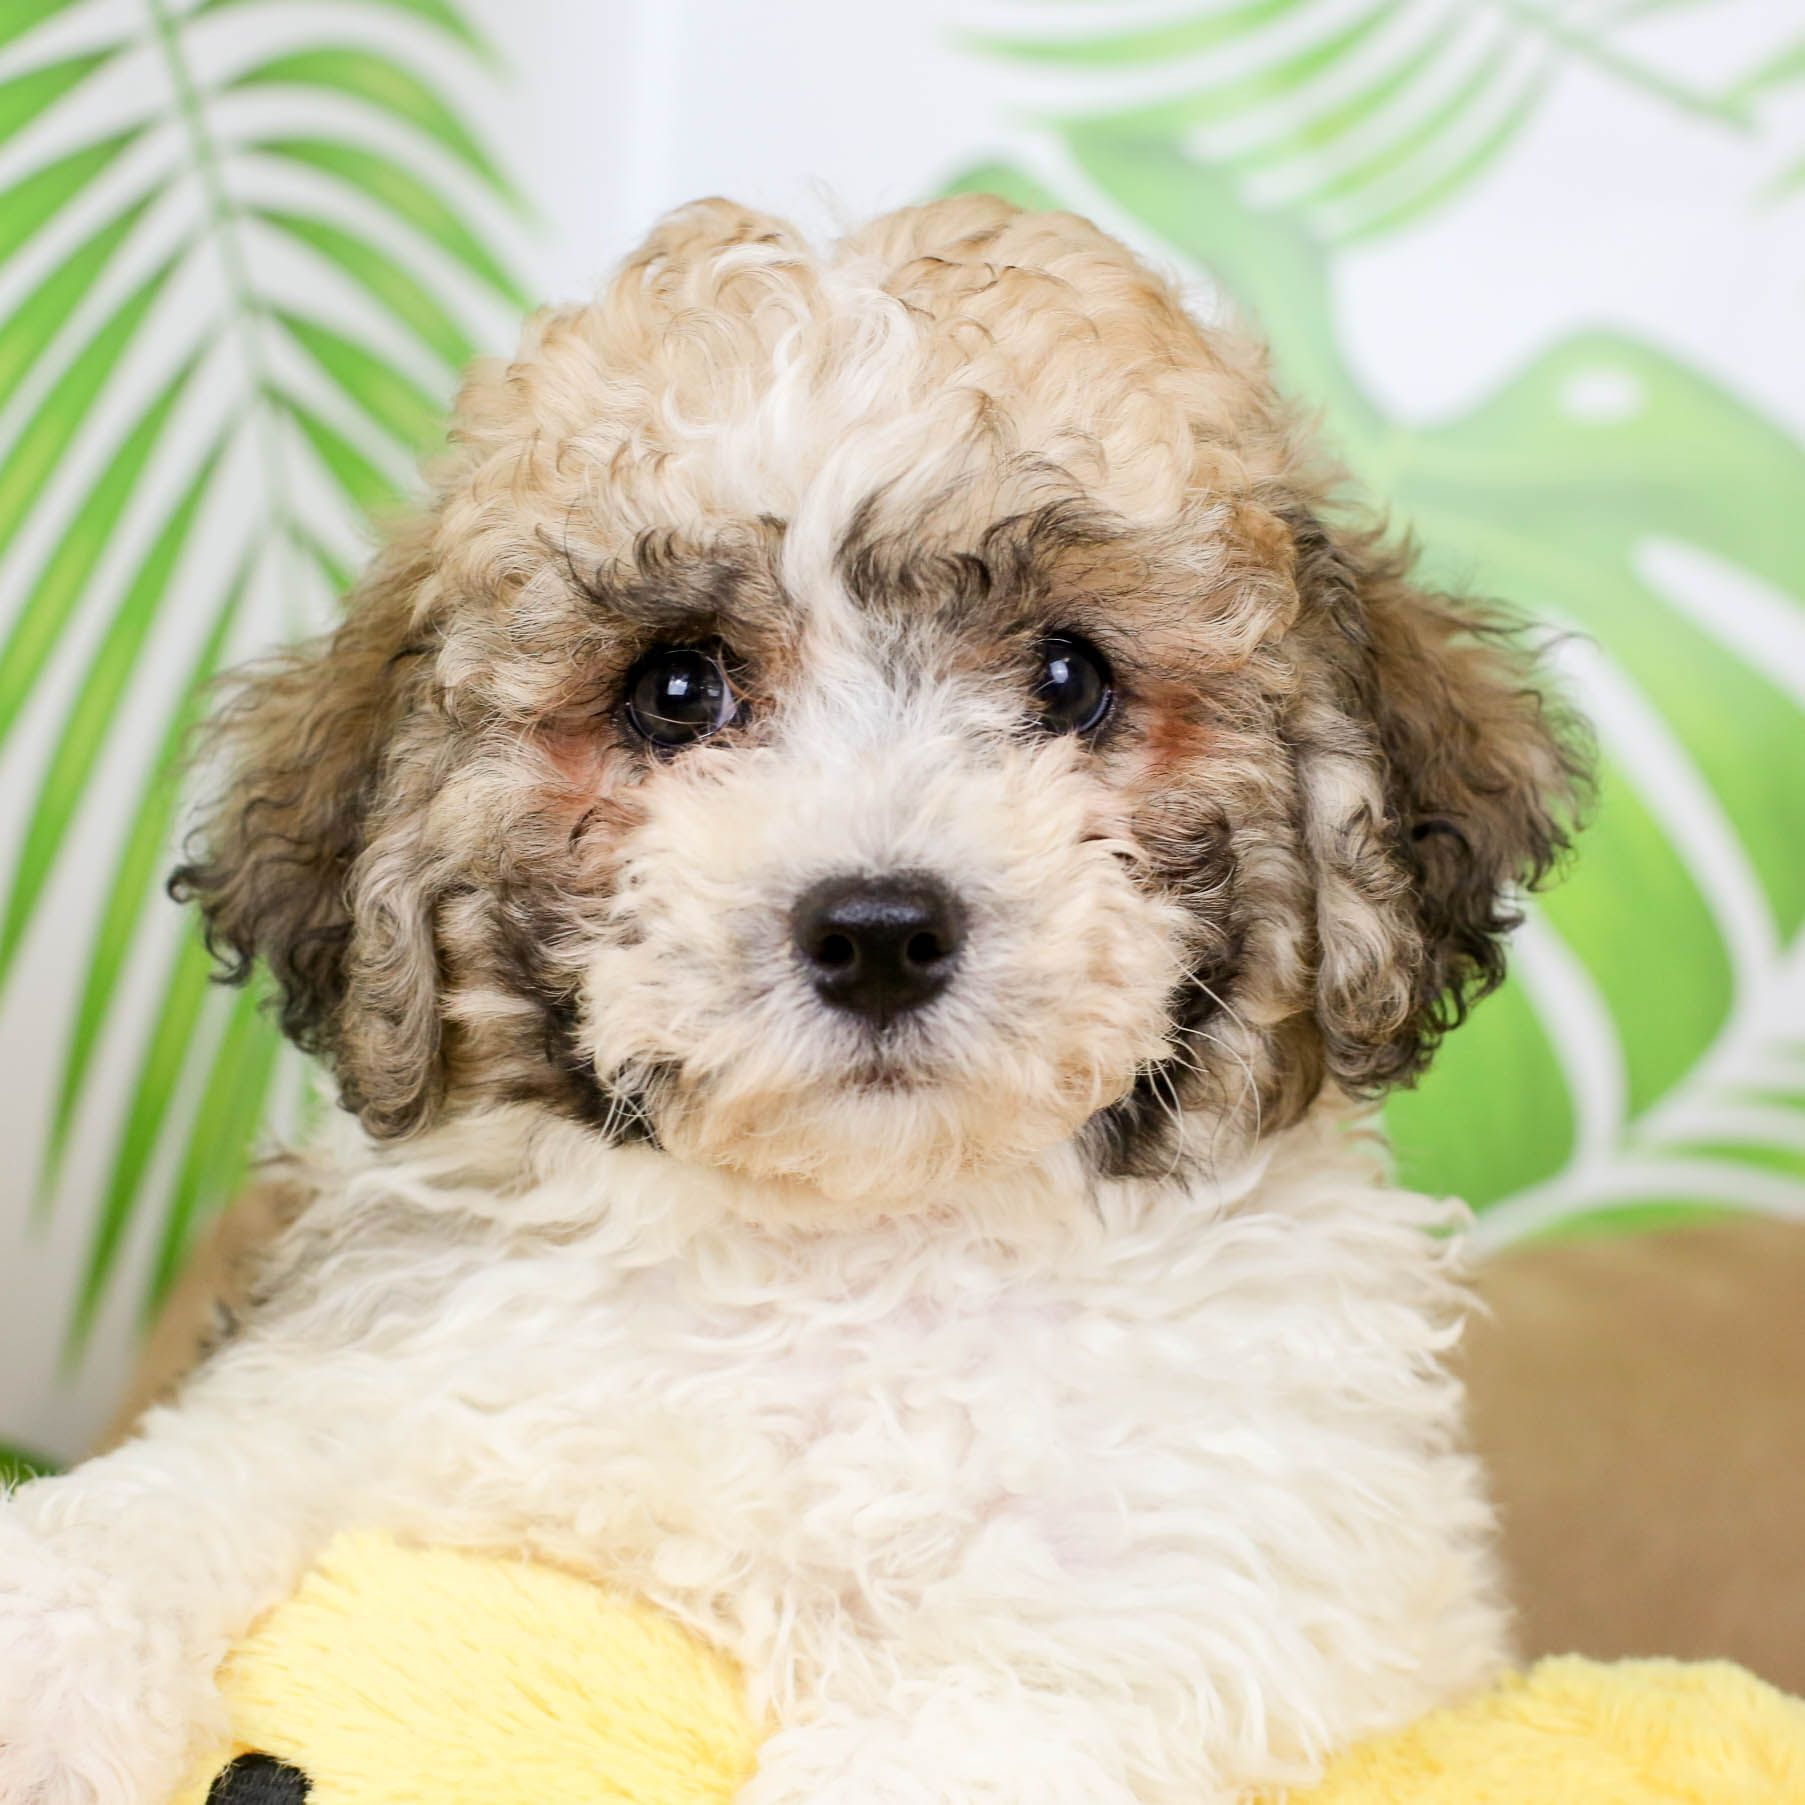 Poochon Puppies Are Beautiful Combos Of Poodles And Bichon Frises